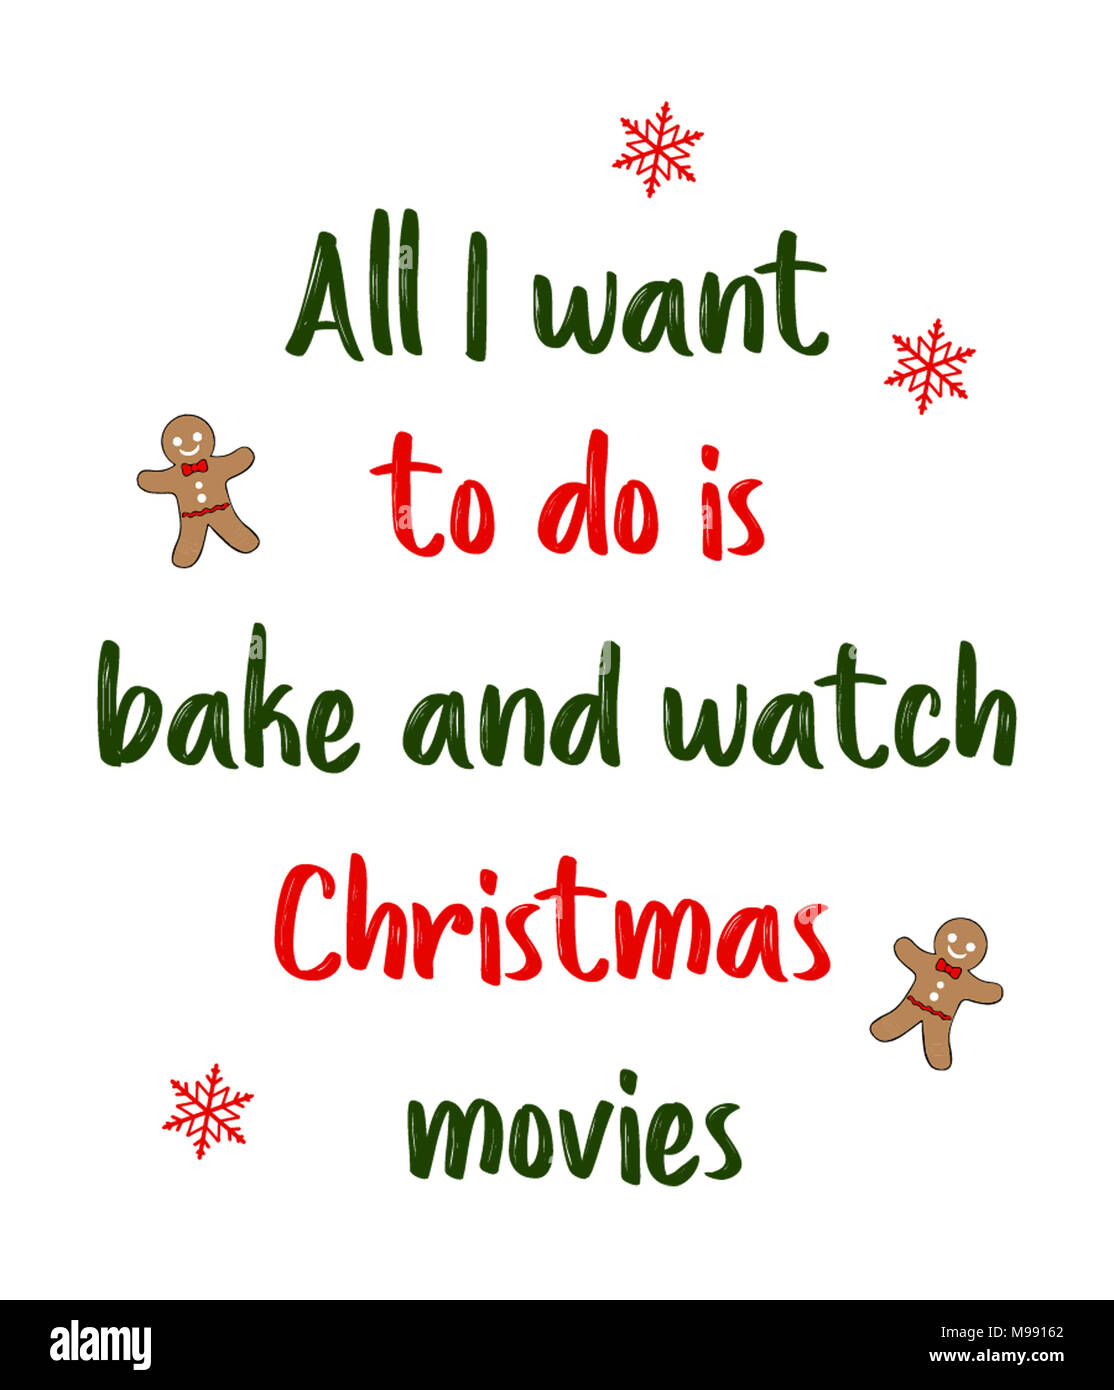 Christmas Movies Stock Photos & Christmas Movies Stock Images - Alamy